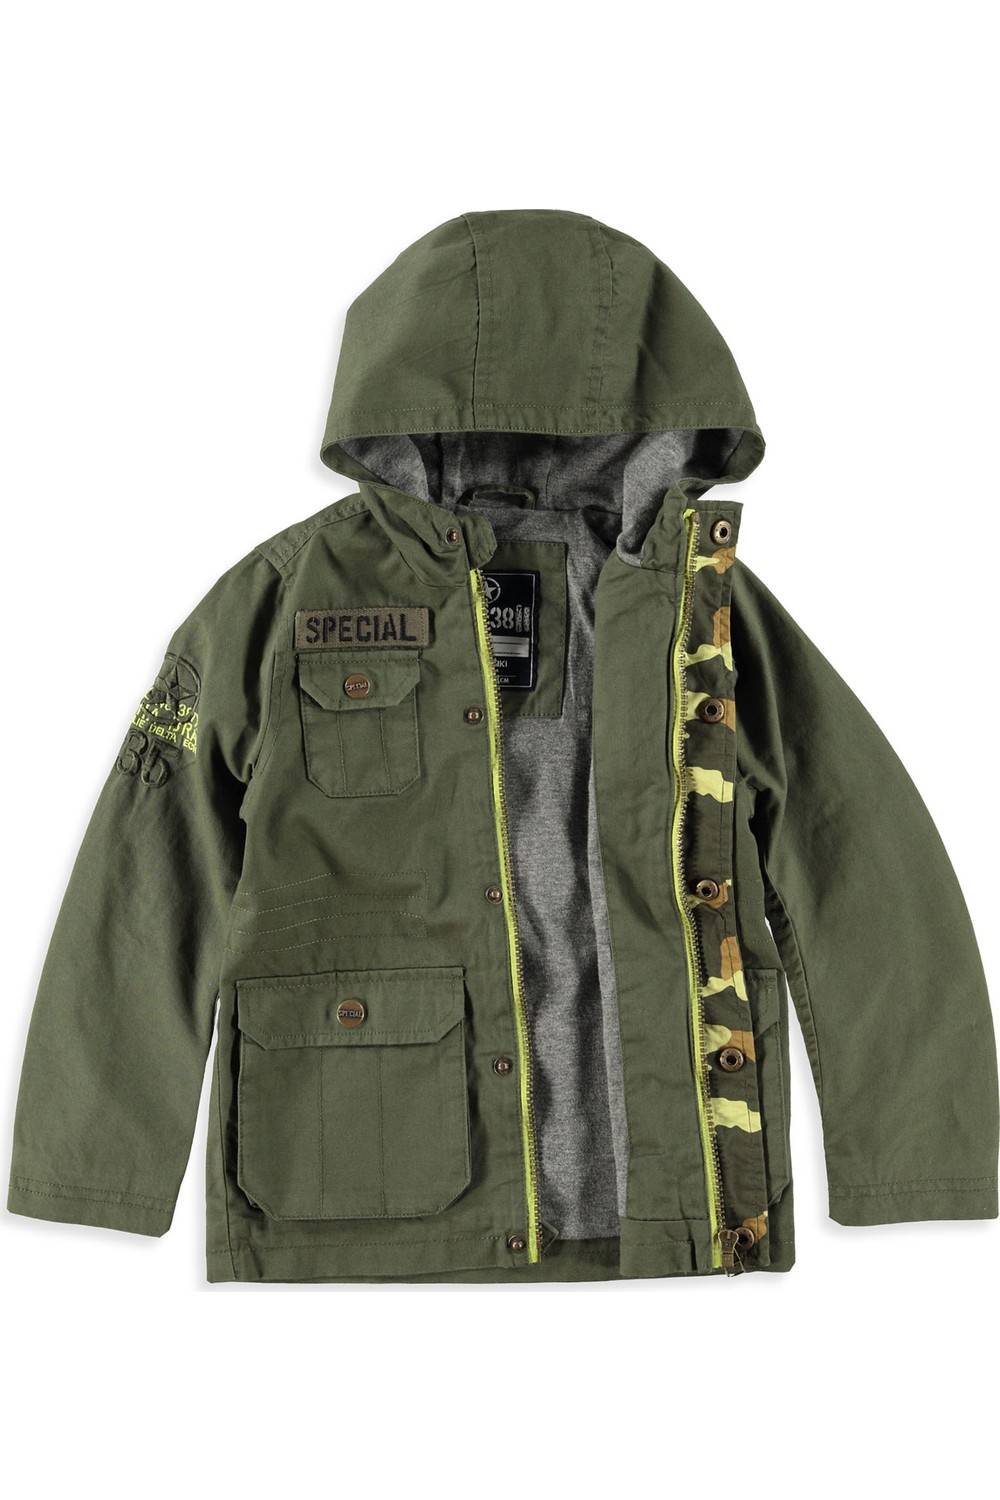 LC Waikiki Kids' Jacket with Embroidered Details